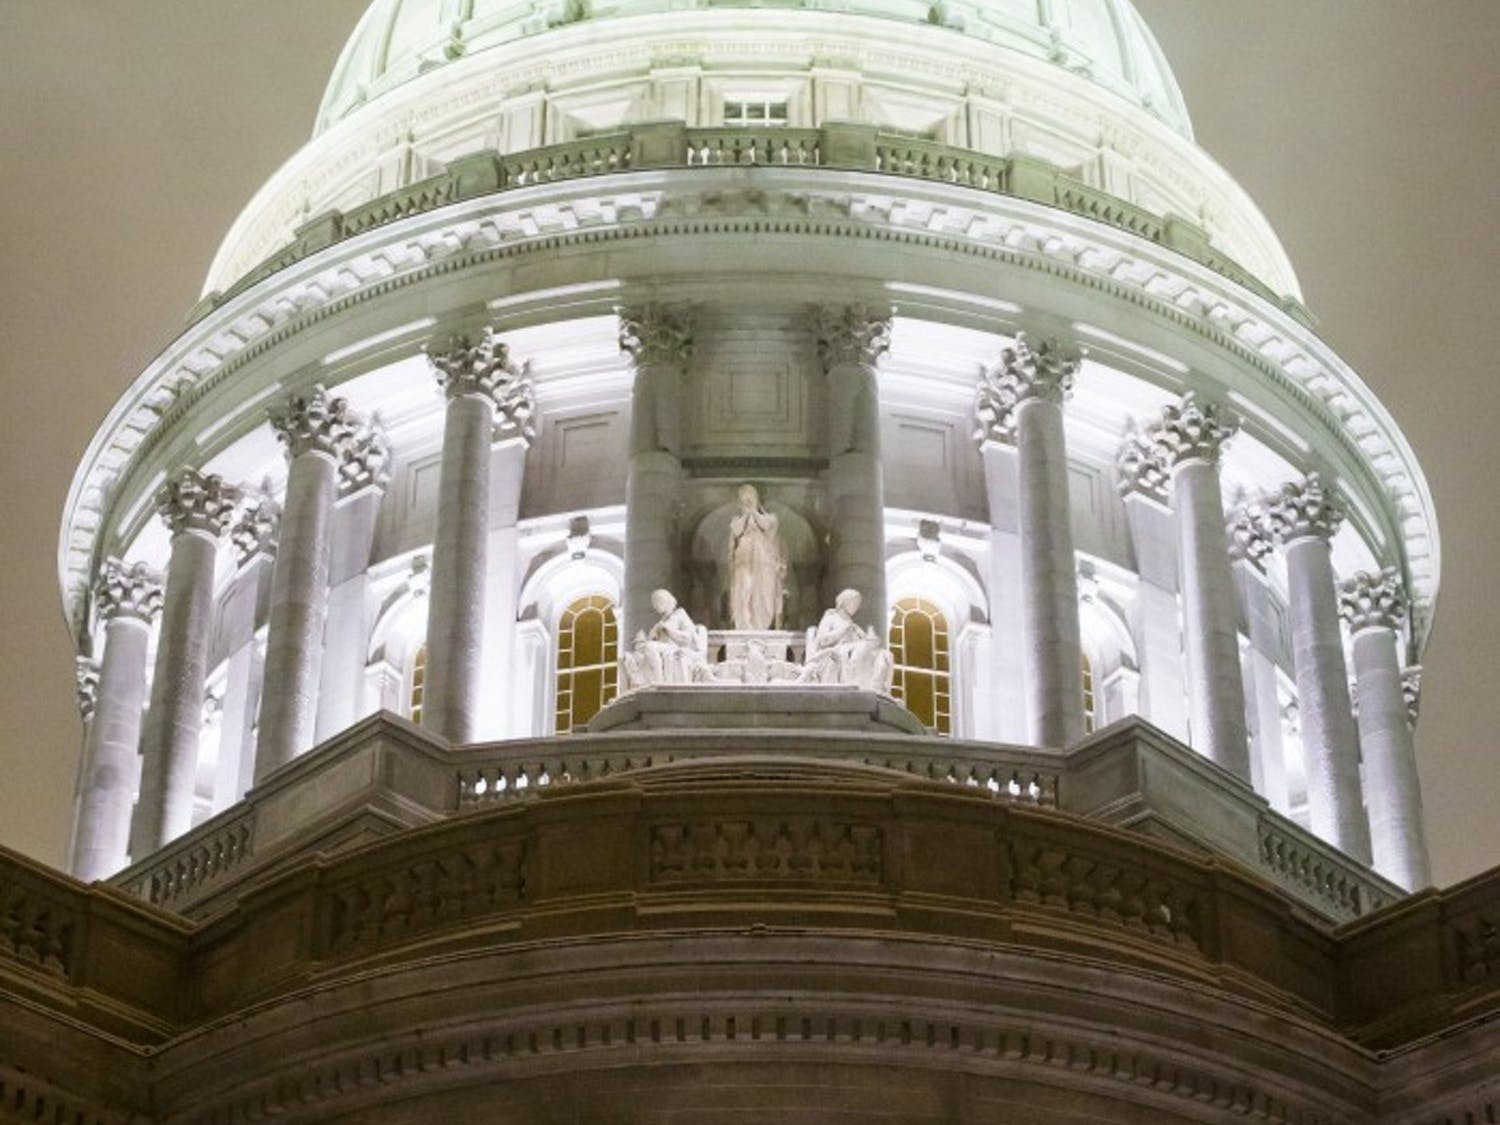 The bill would tighten penalties on people falsely trying to collect unemployment benefits.